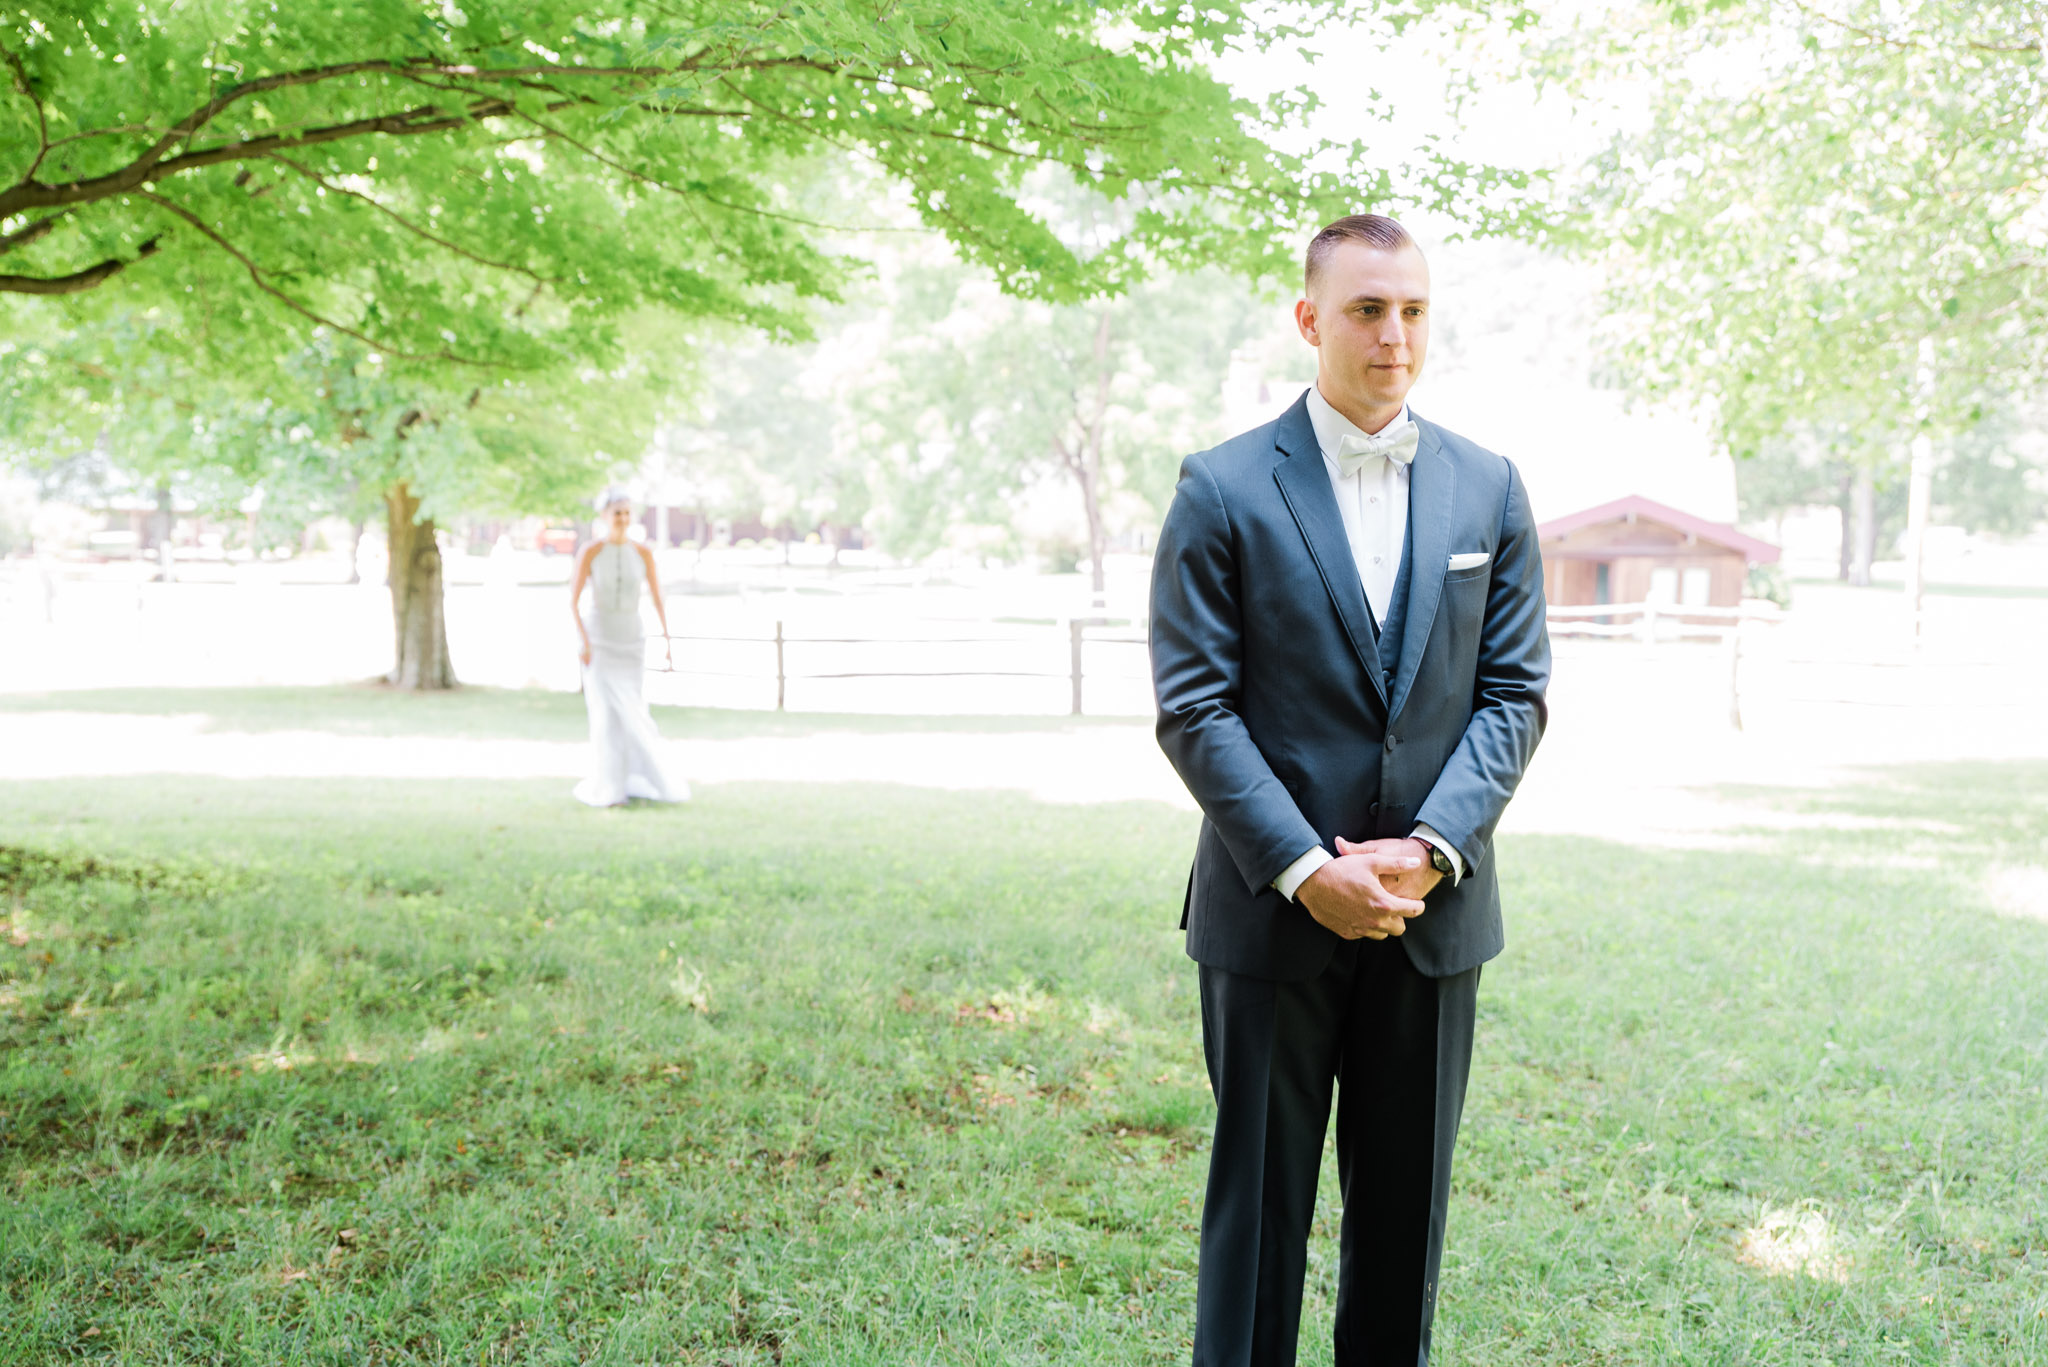 First Look Foggy Mountain Stahlstown PA Wedding Photography-7790.jpg